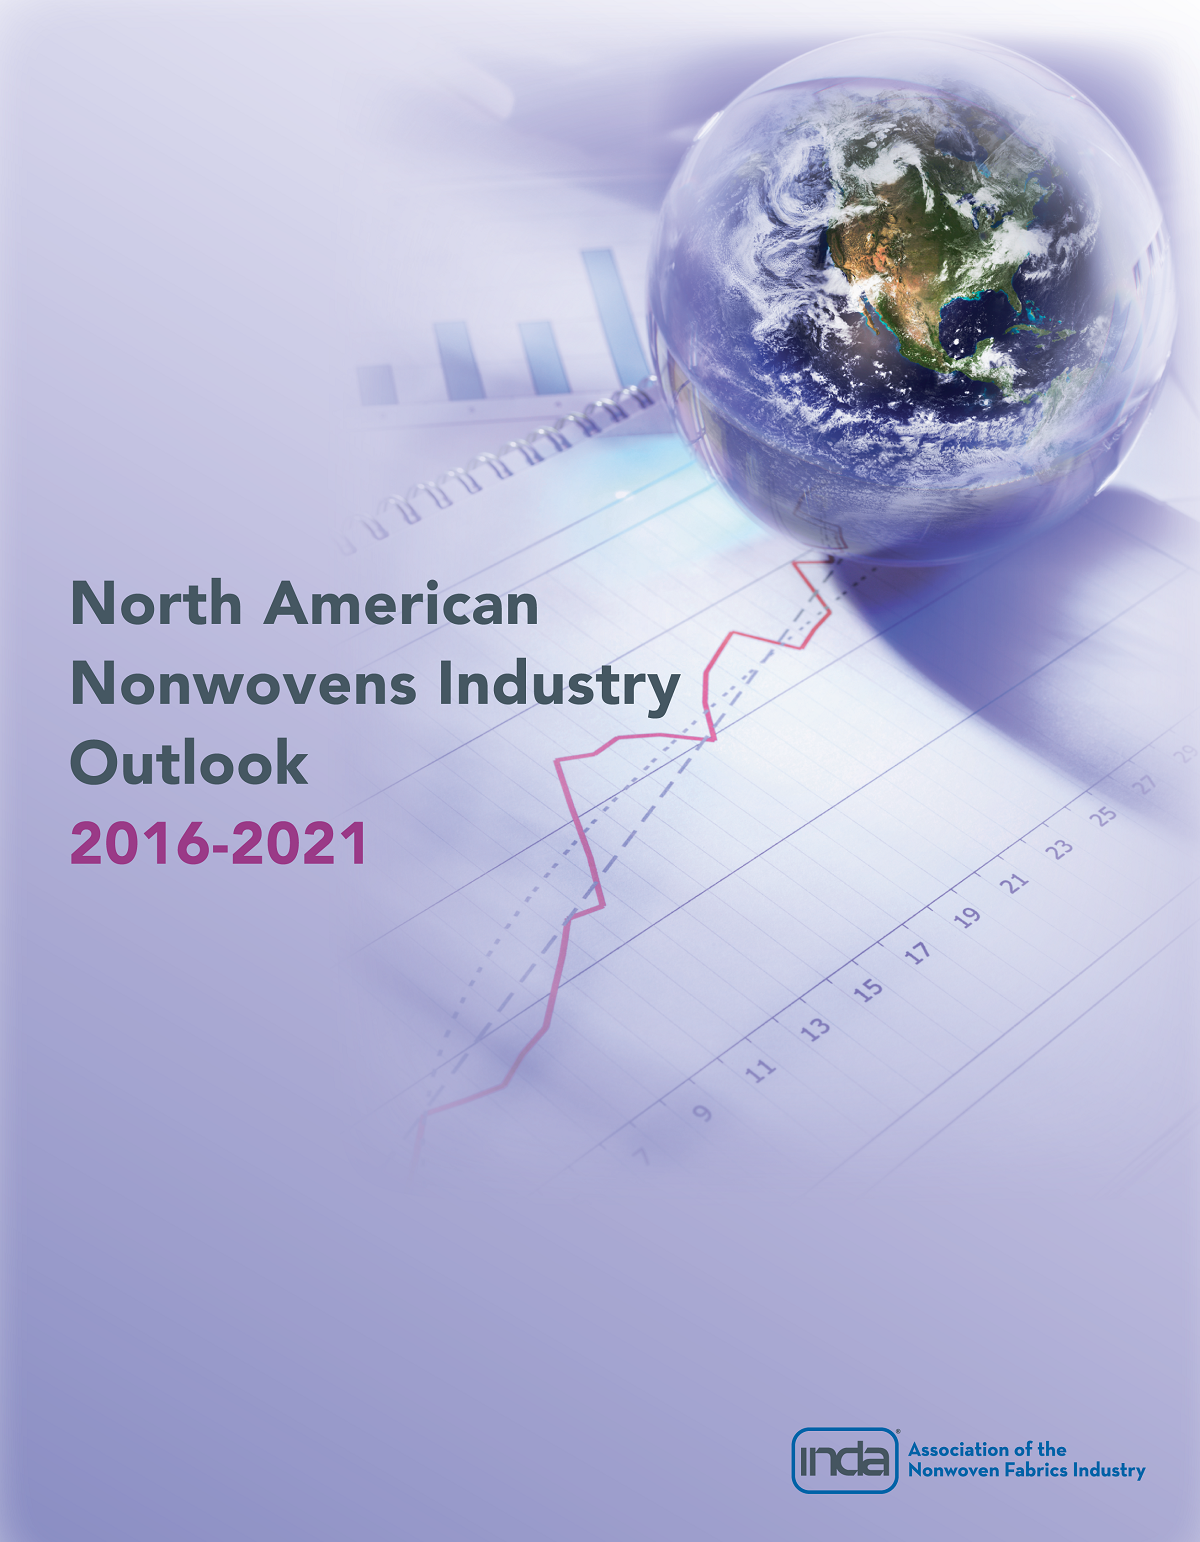 North American Nonwovens Industry Outlook, 2016-2021